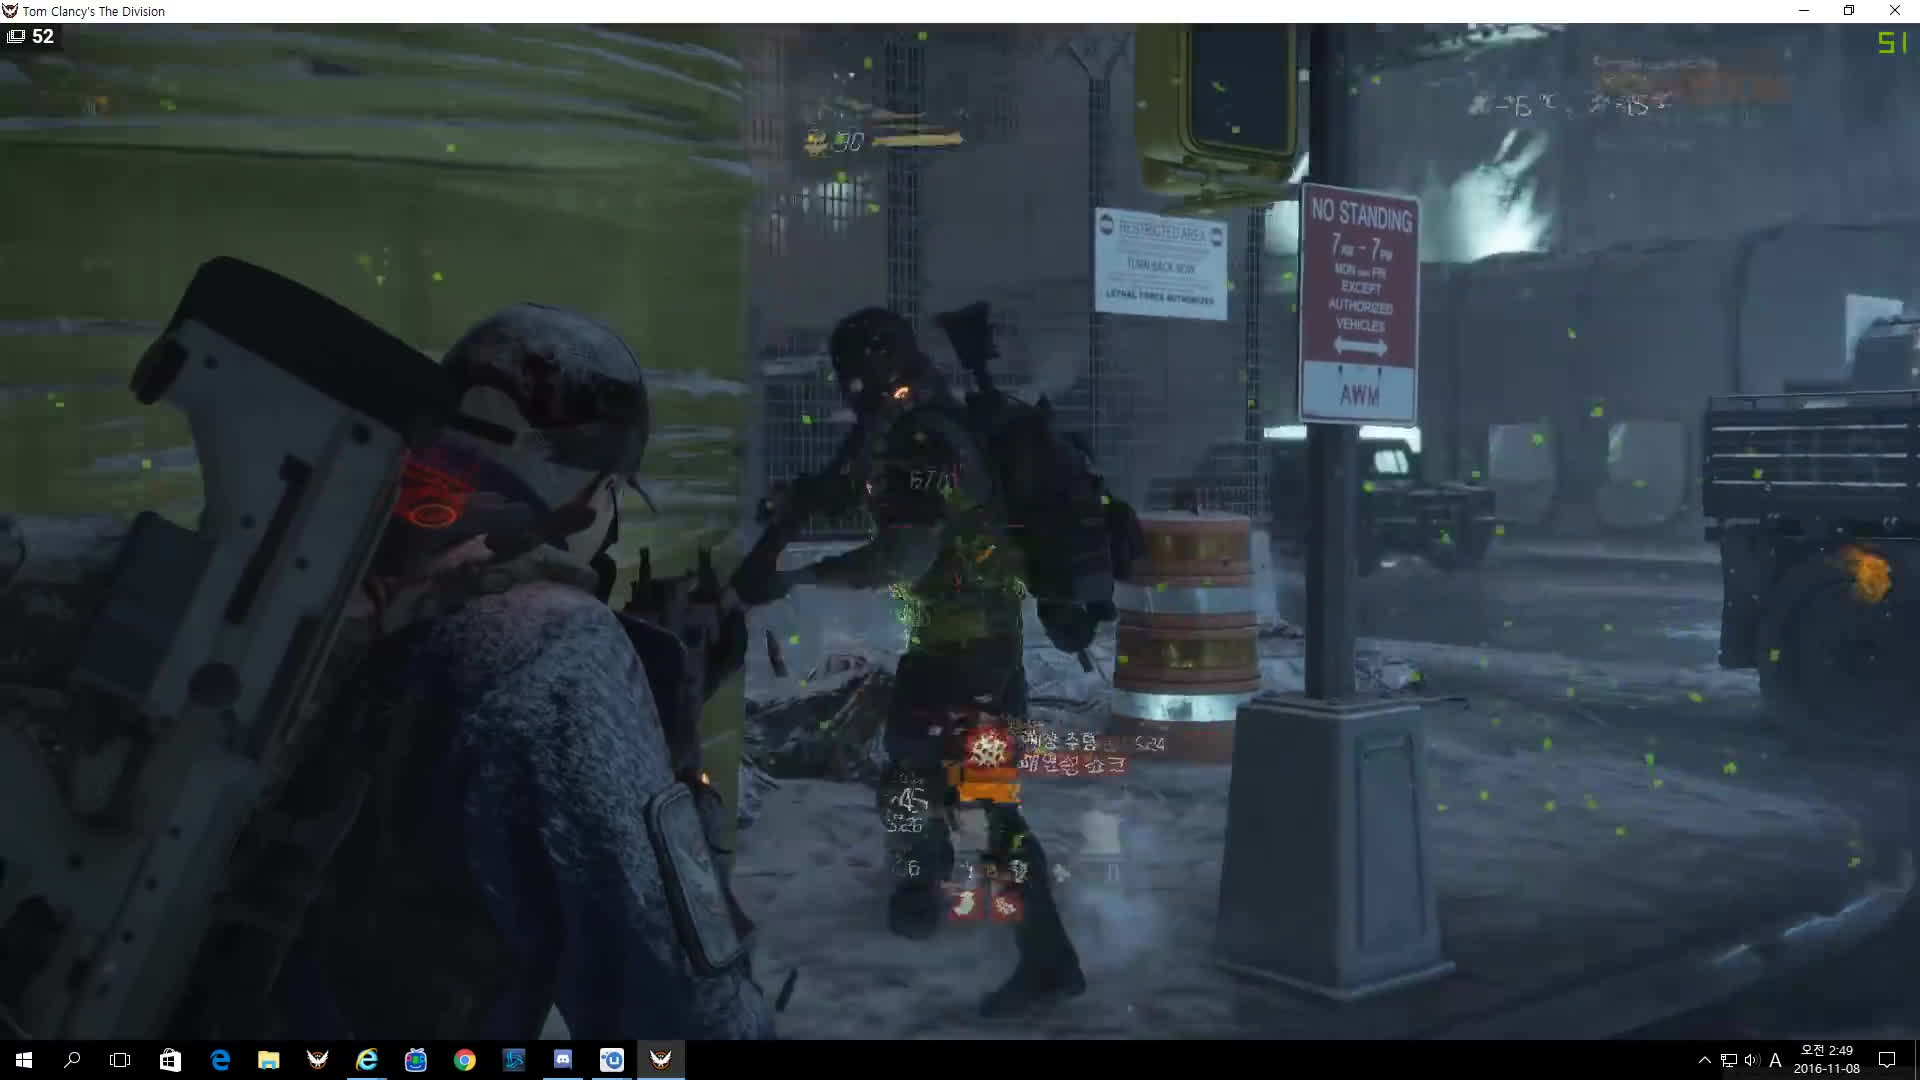 thedivision, Tom Clancy's The Division survival PTS  VS Hunter GIFs